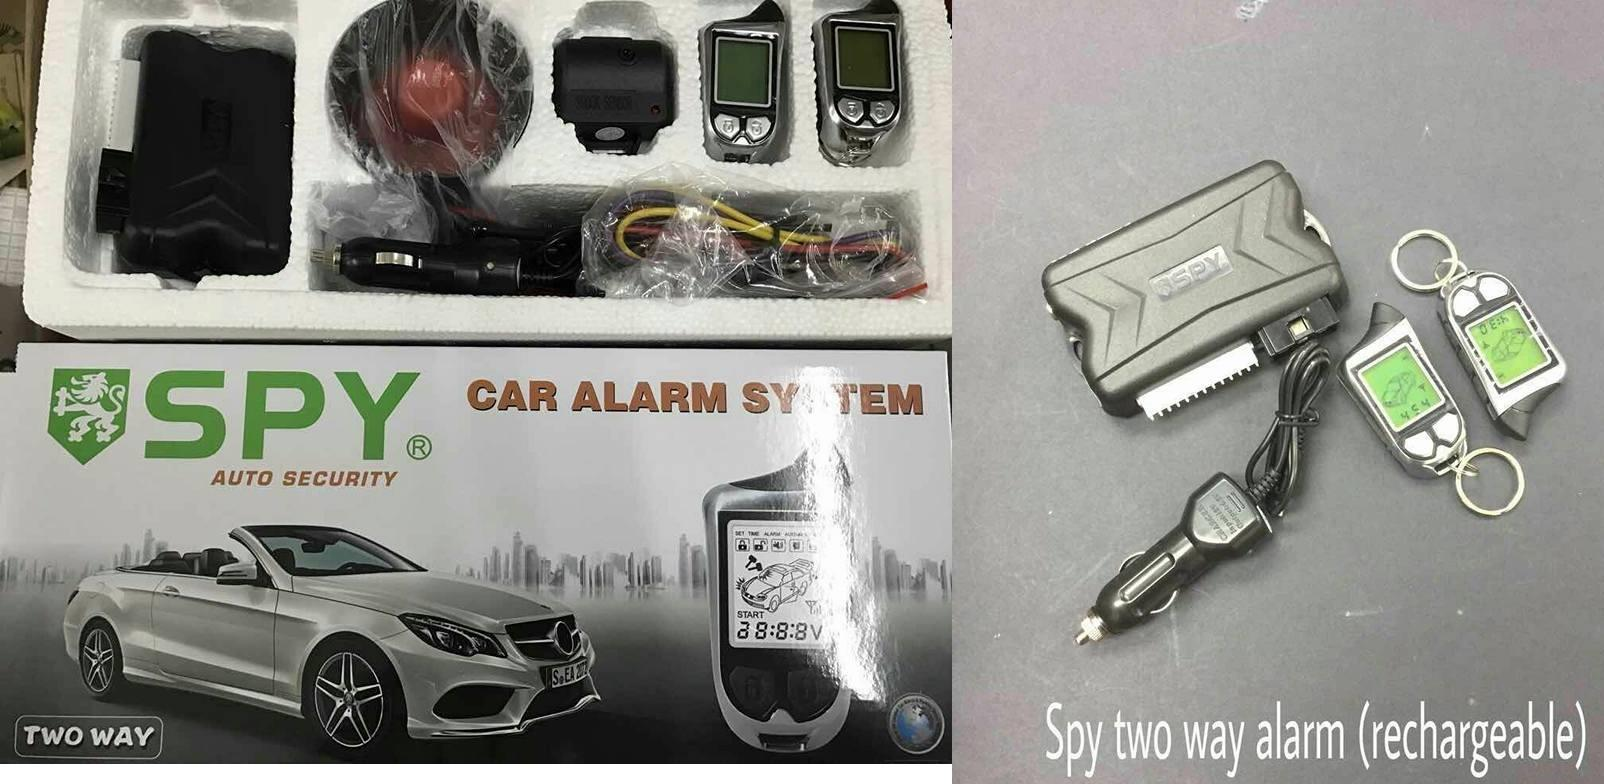 2 way spy alarm rechargeable for all car